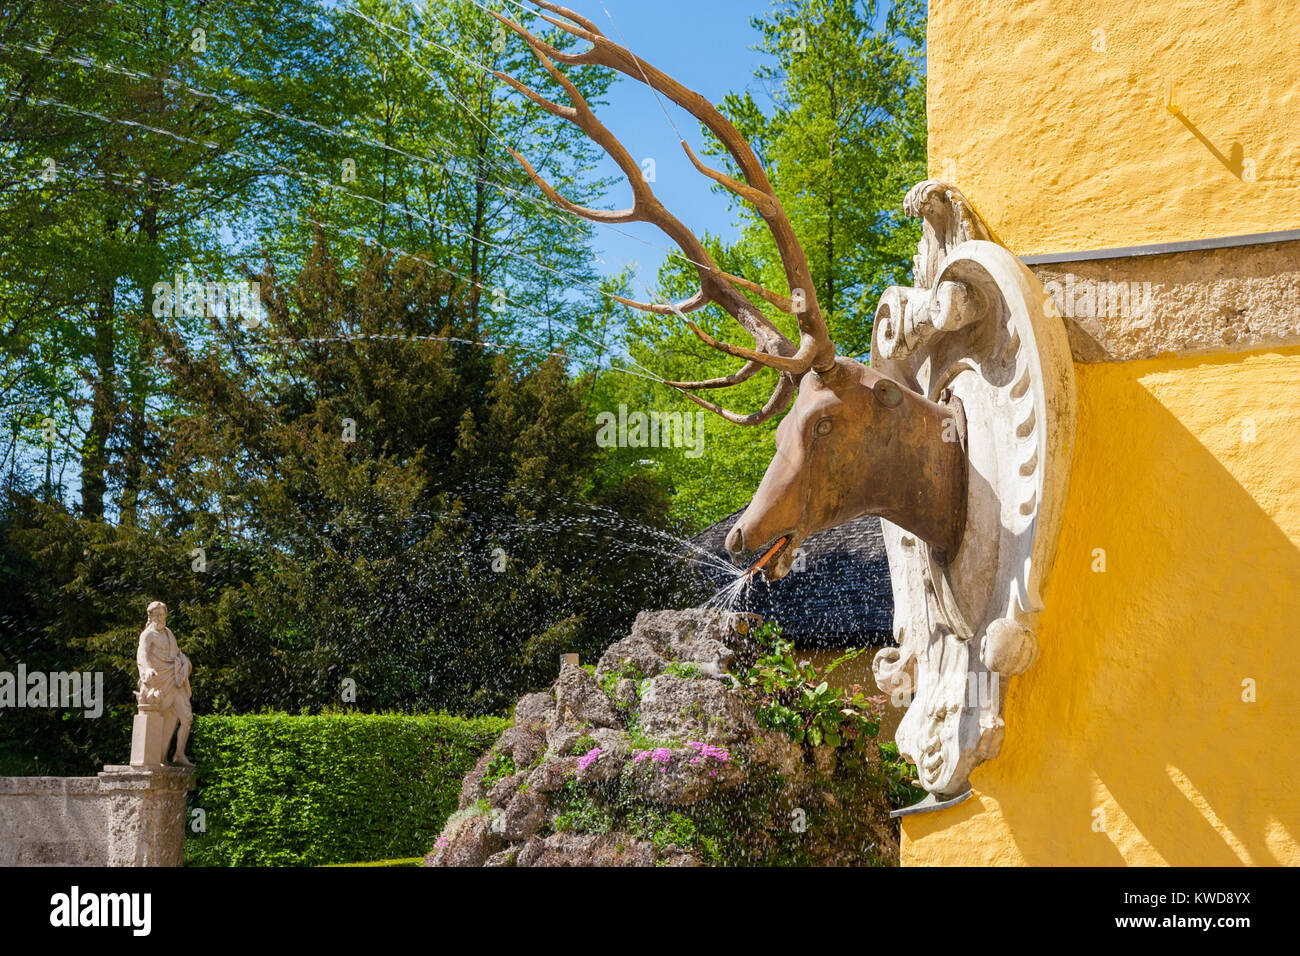 A deer head trick fountain in the Jeux d'eau of Hellbrunn Palace in Salzburg, Austria. - Stock Image